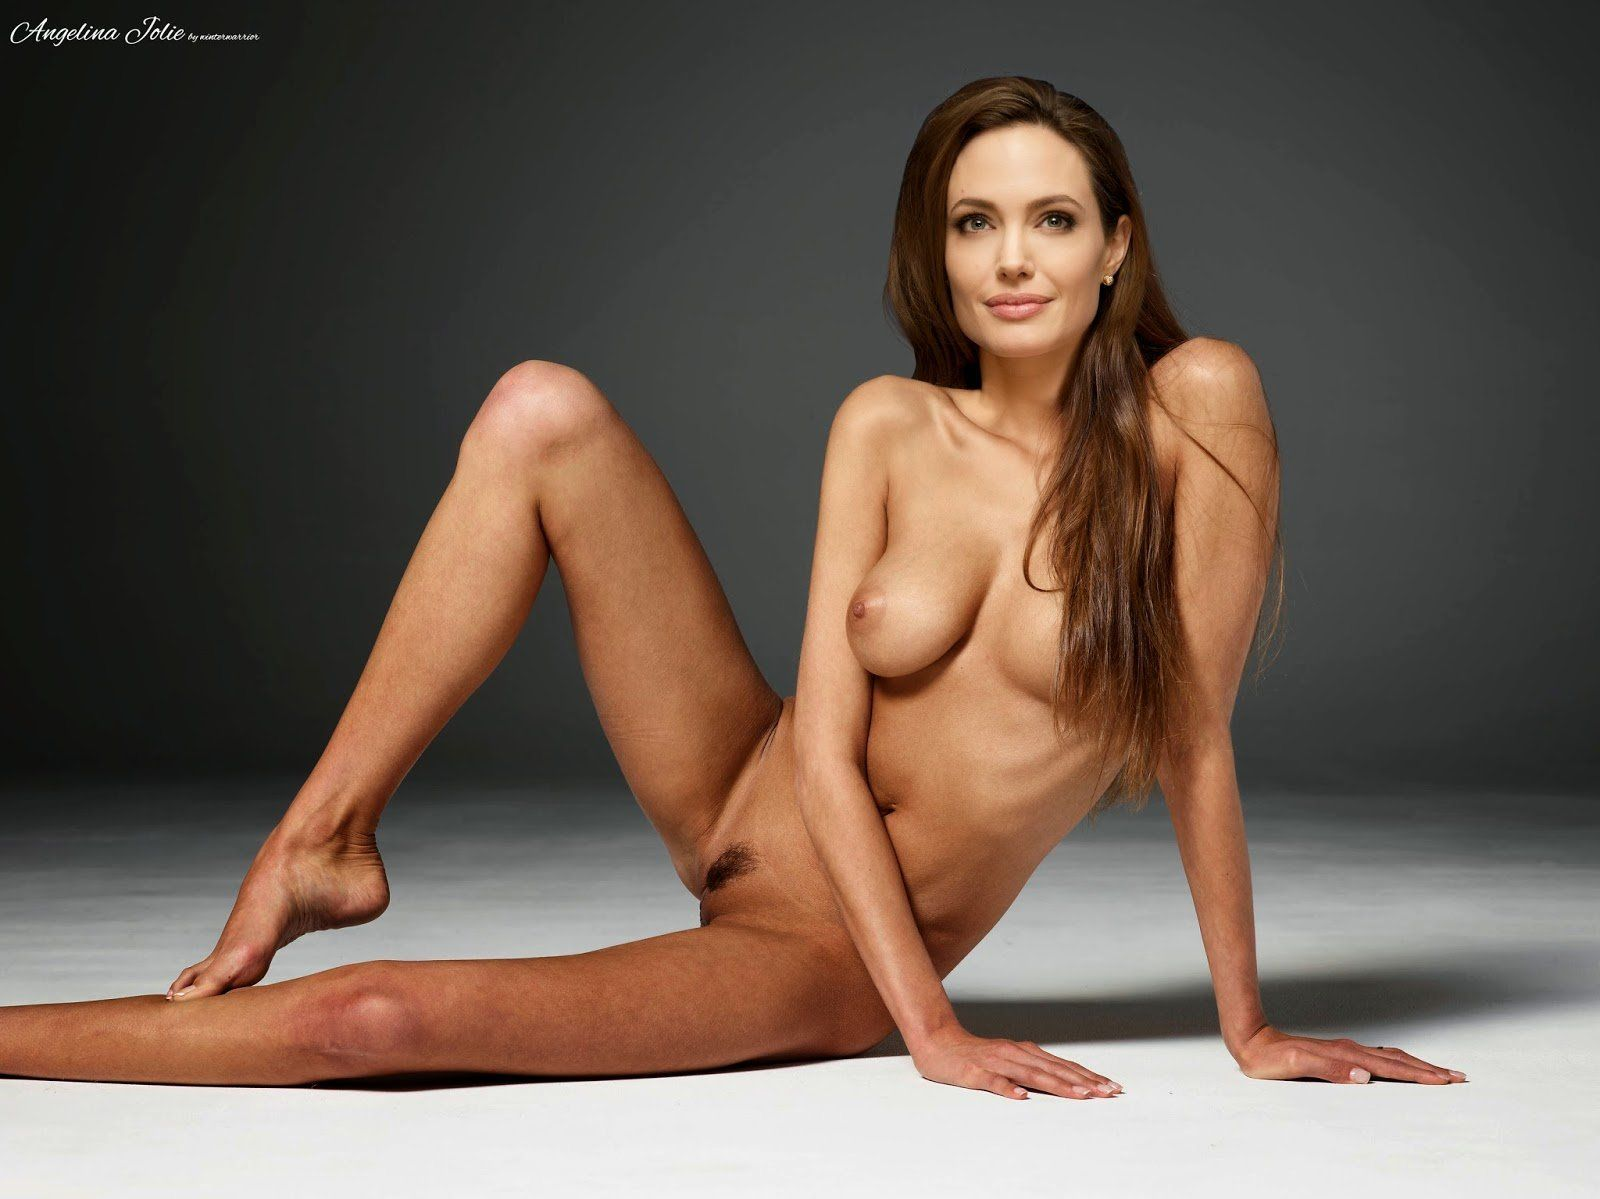 Angelina Jolie Gia Nude Scene angelina jule naked . new porn. comments: 2